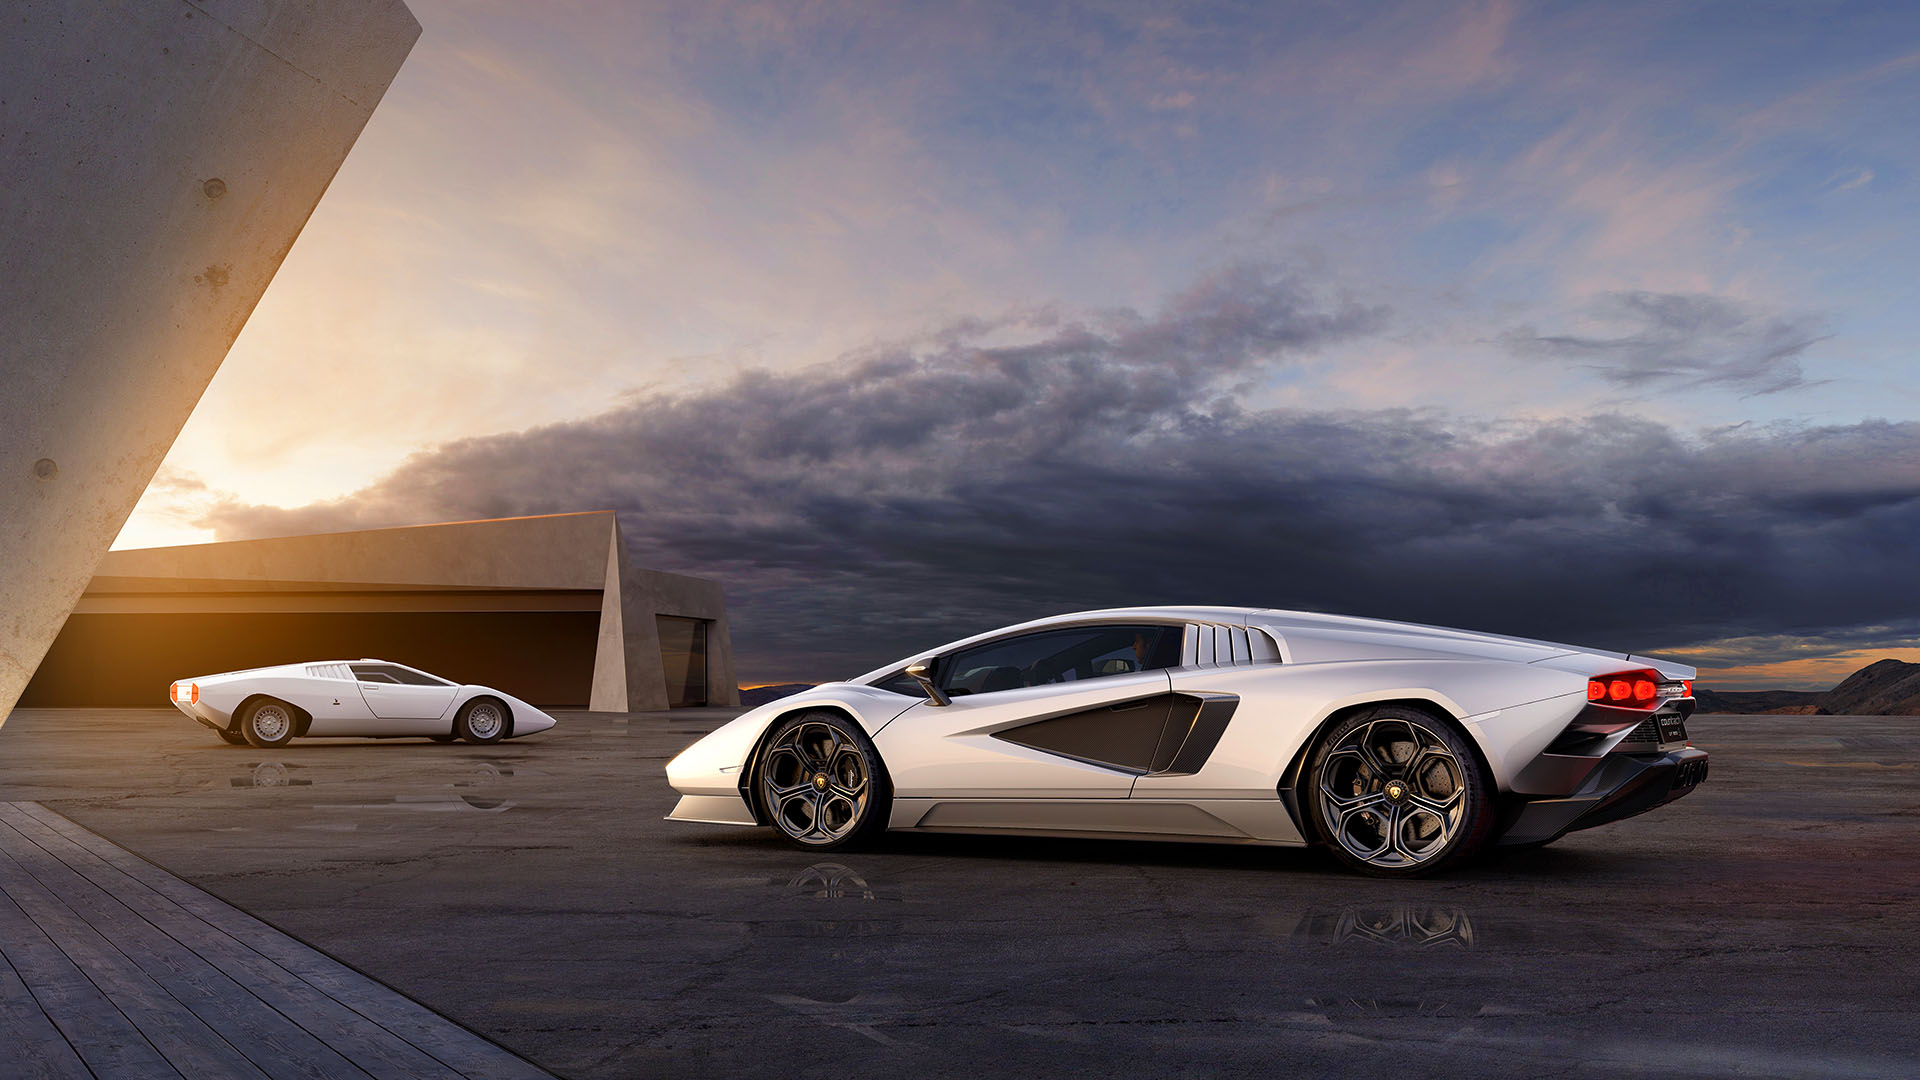 Lamborghini official photo of the new Countach with the old one in the background